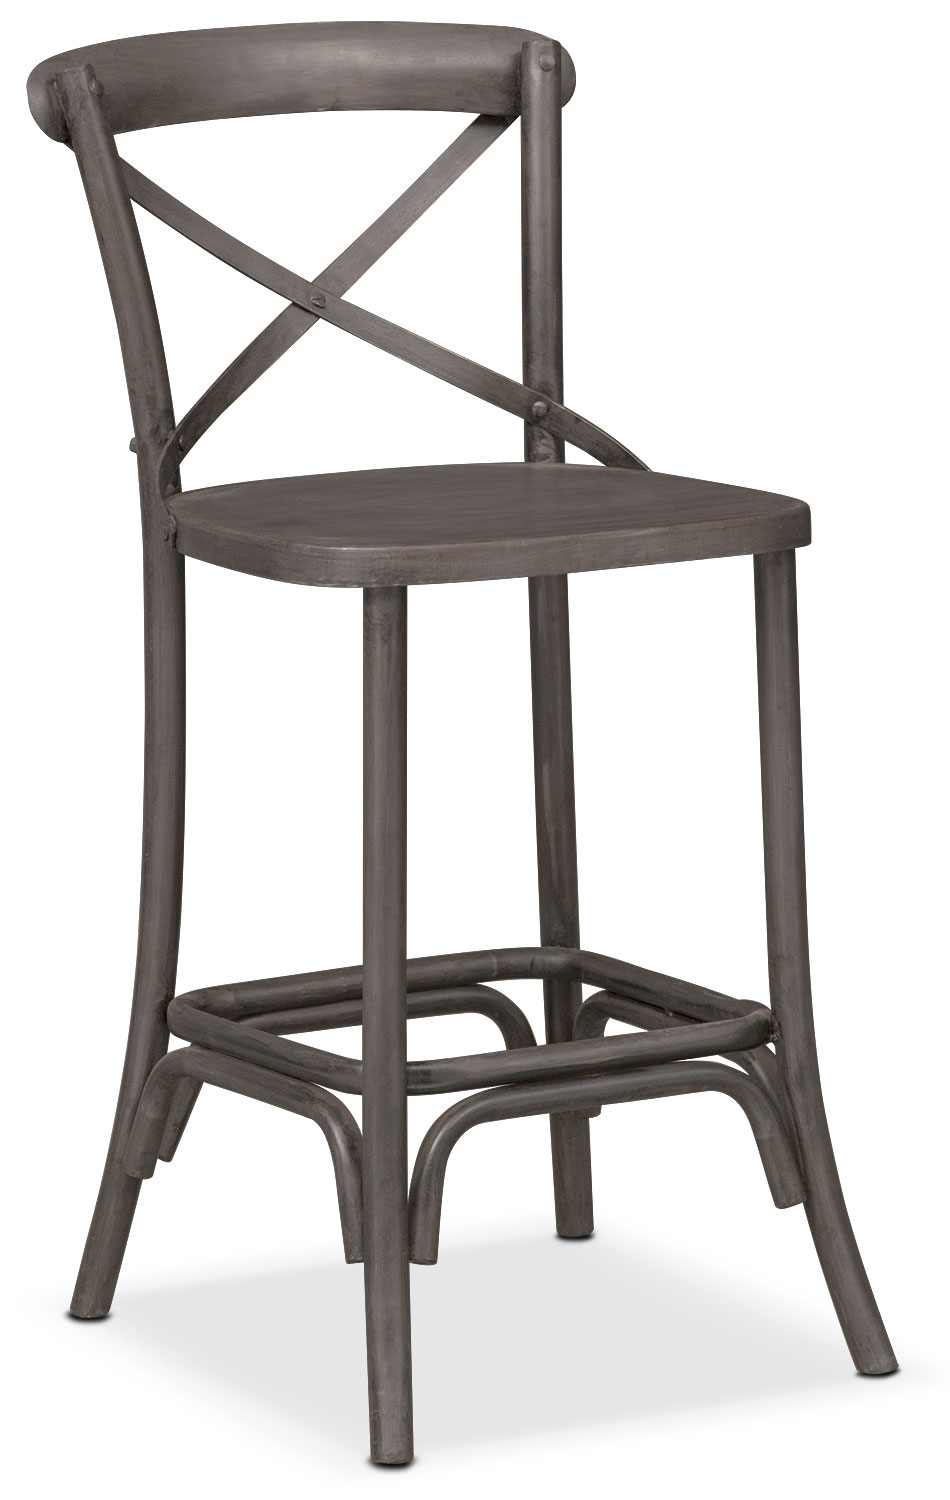 Braddock Counter-Height Stool - Black